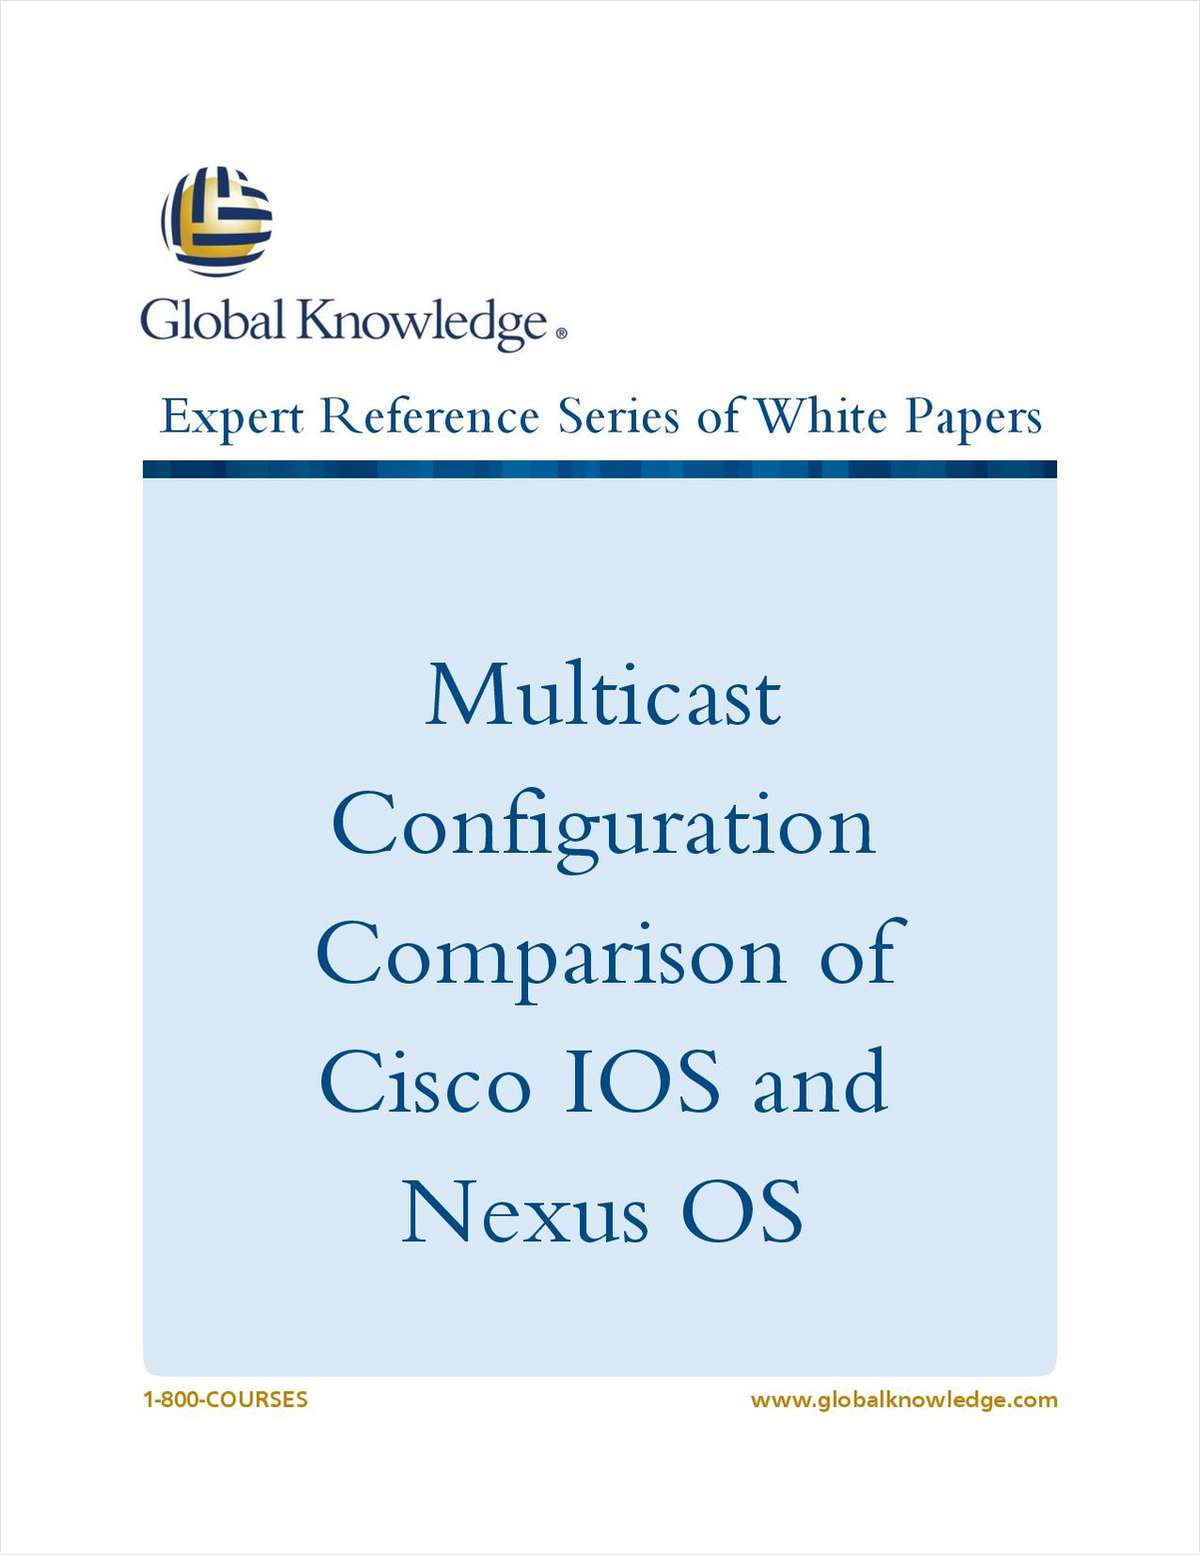 Multicast Configuration Comparison of Cisco IOS and Nexus OS